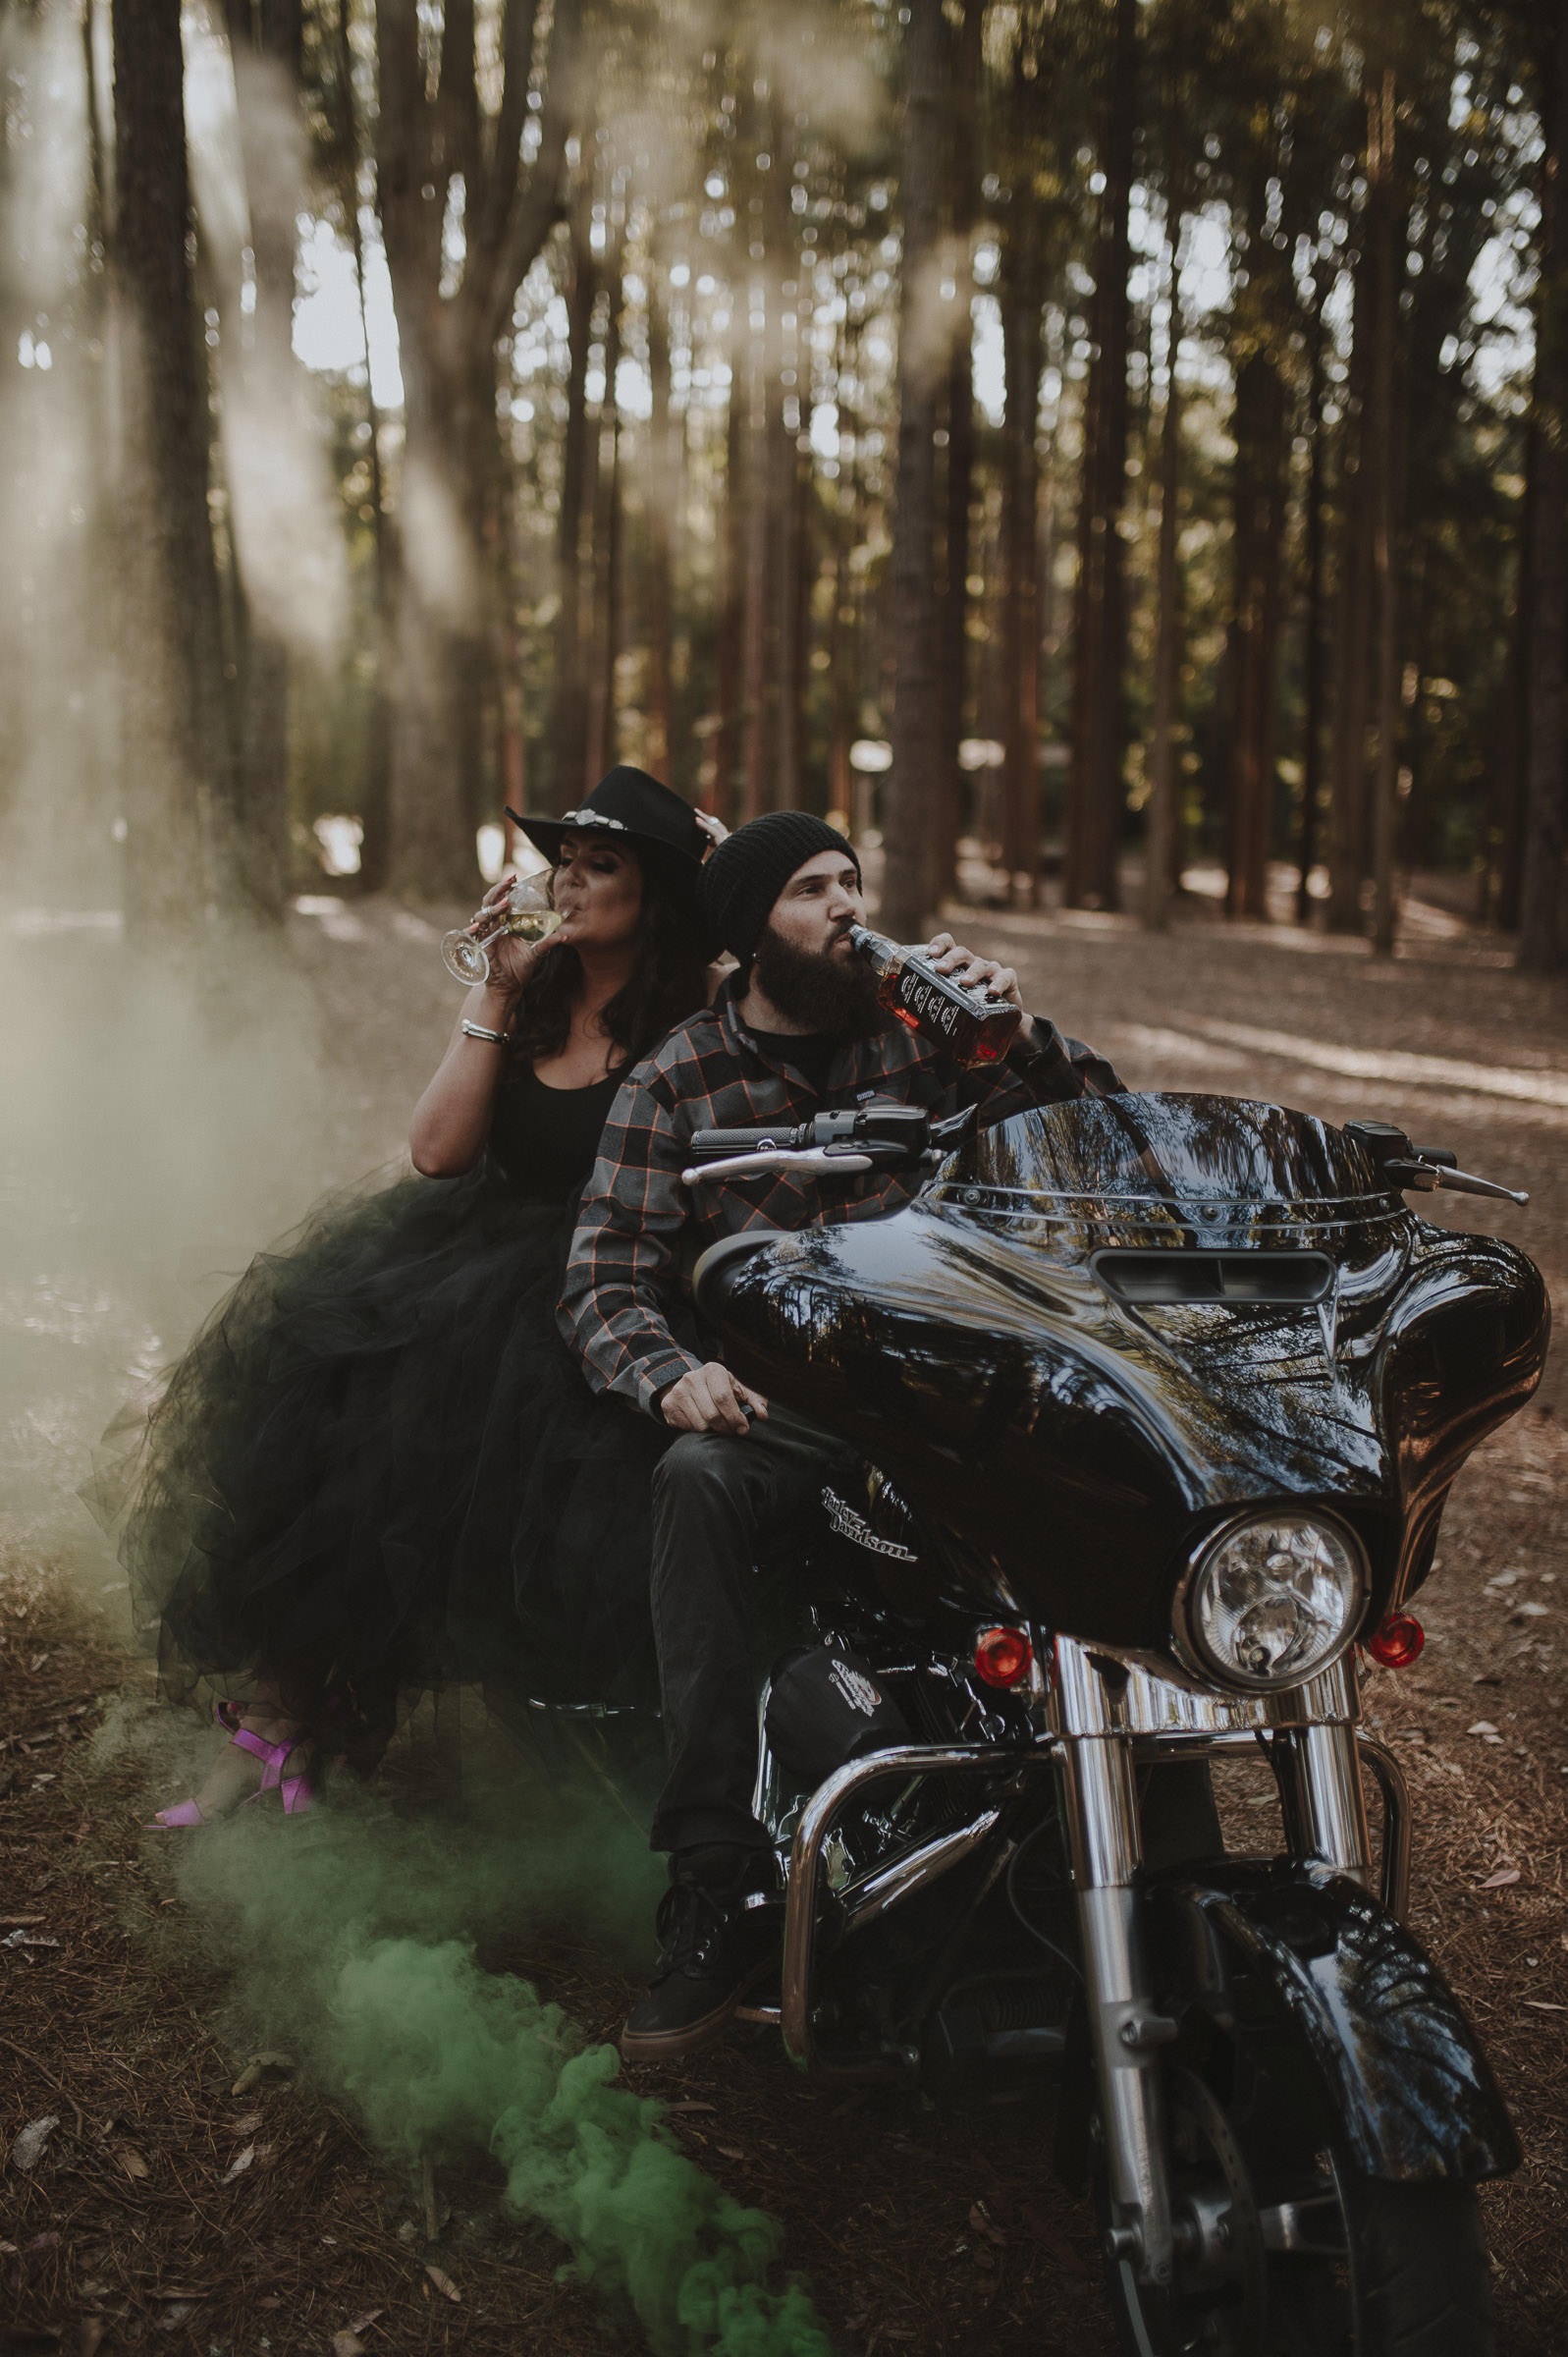 Madeline_Jamie_Watagens_Pine_Forest_Engagement_Shoot_Blog-18.jpg